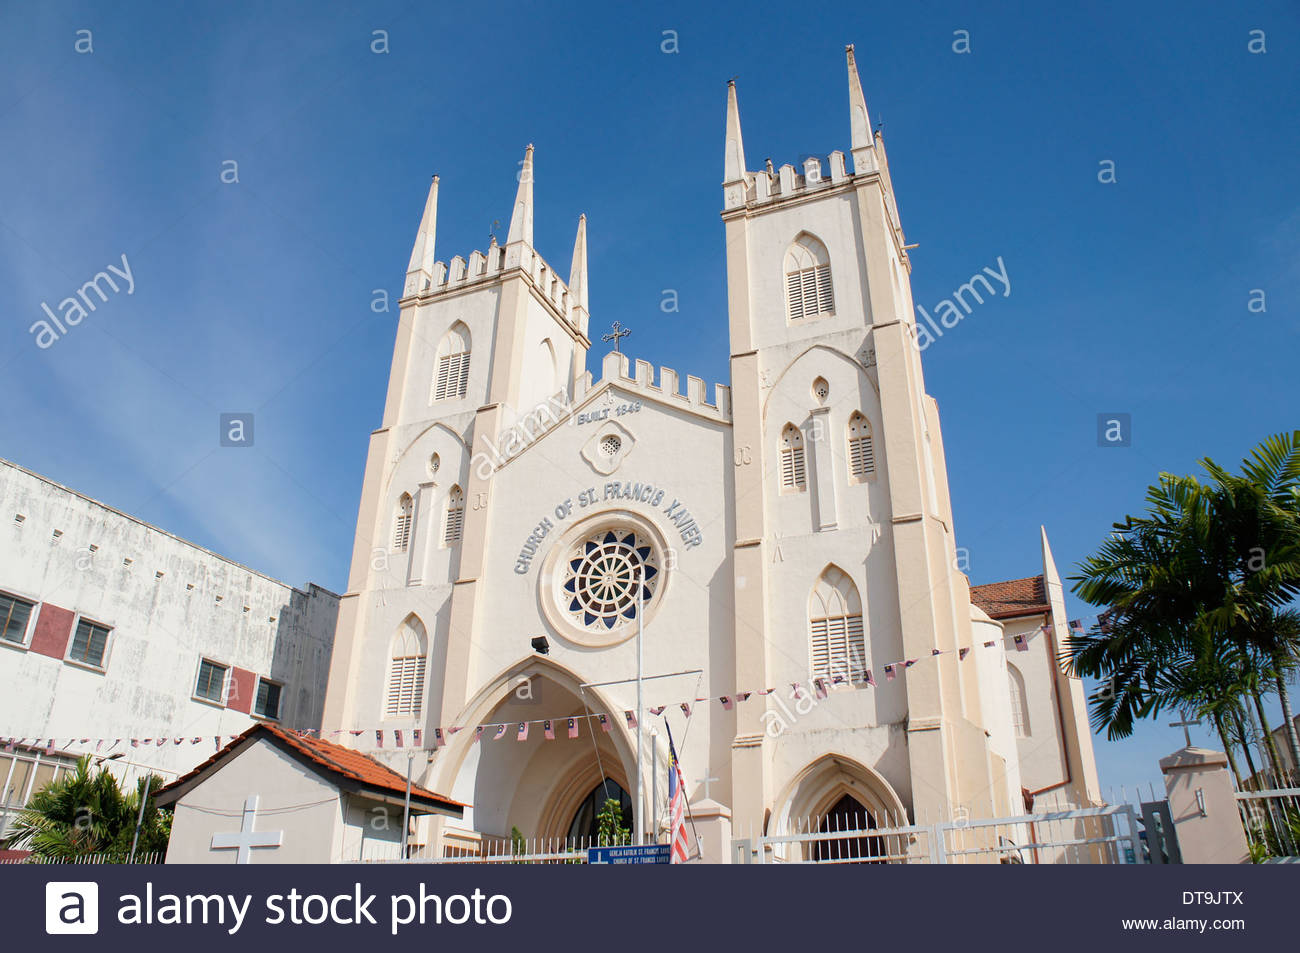 St Francis Xavier's Church Melaka City, Church of St. Francis Xavier, Malacca, Malaysia Stock Photo ...